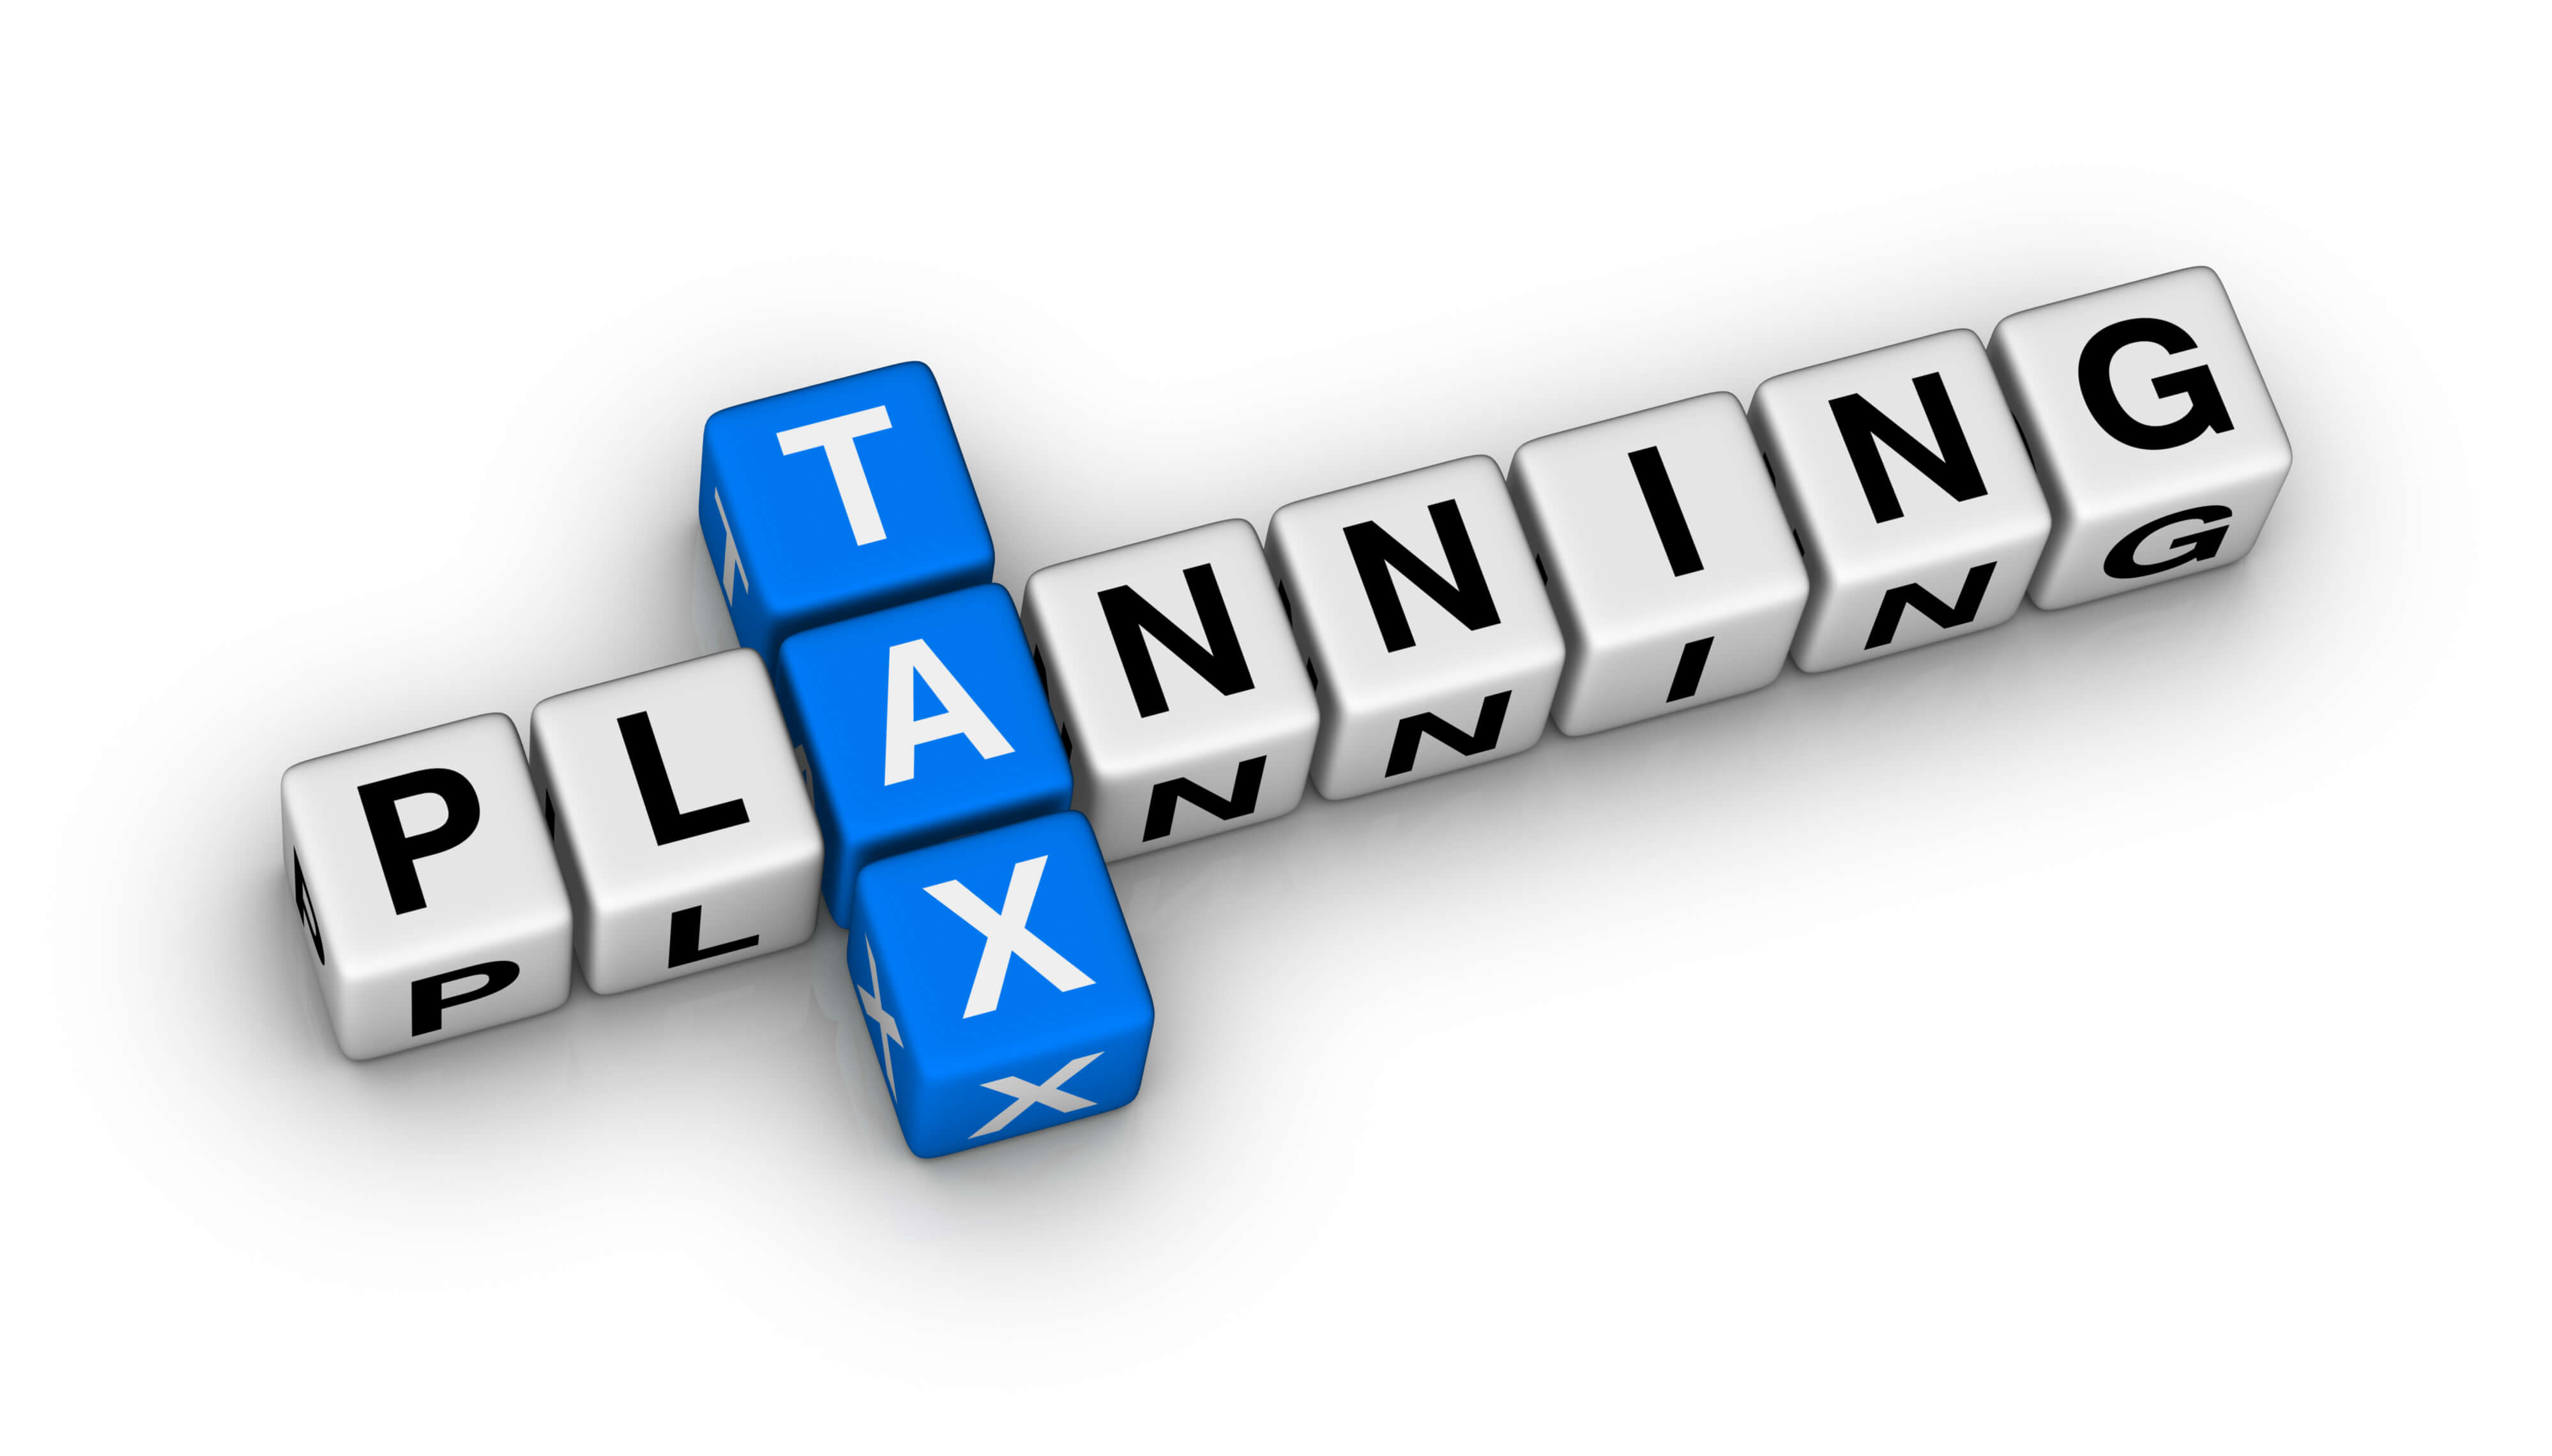 Tax planning within block scrabble letters